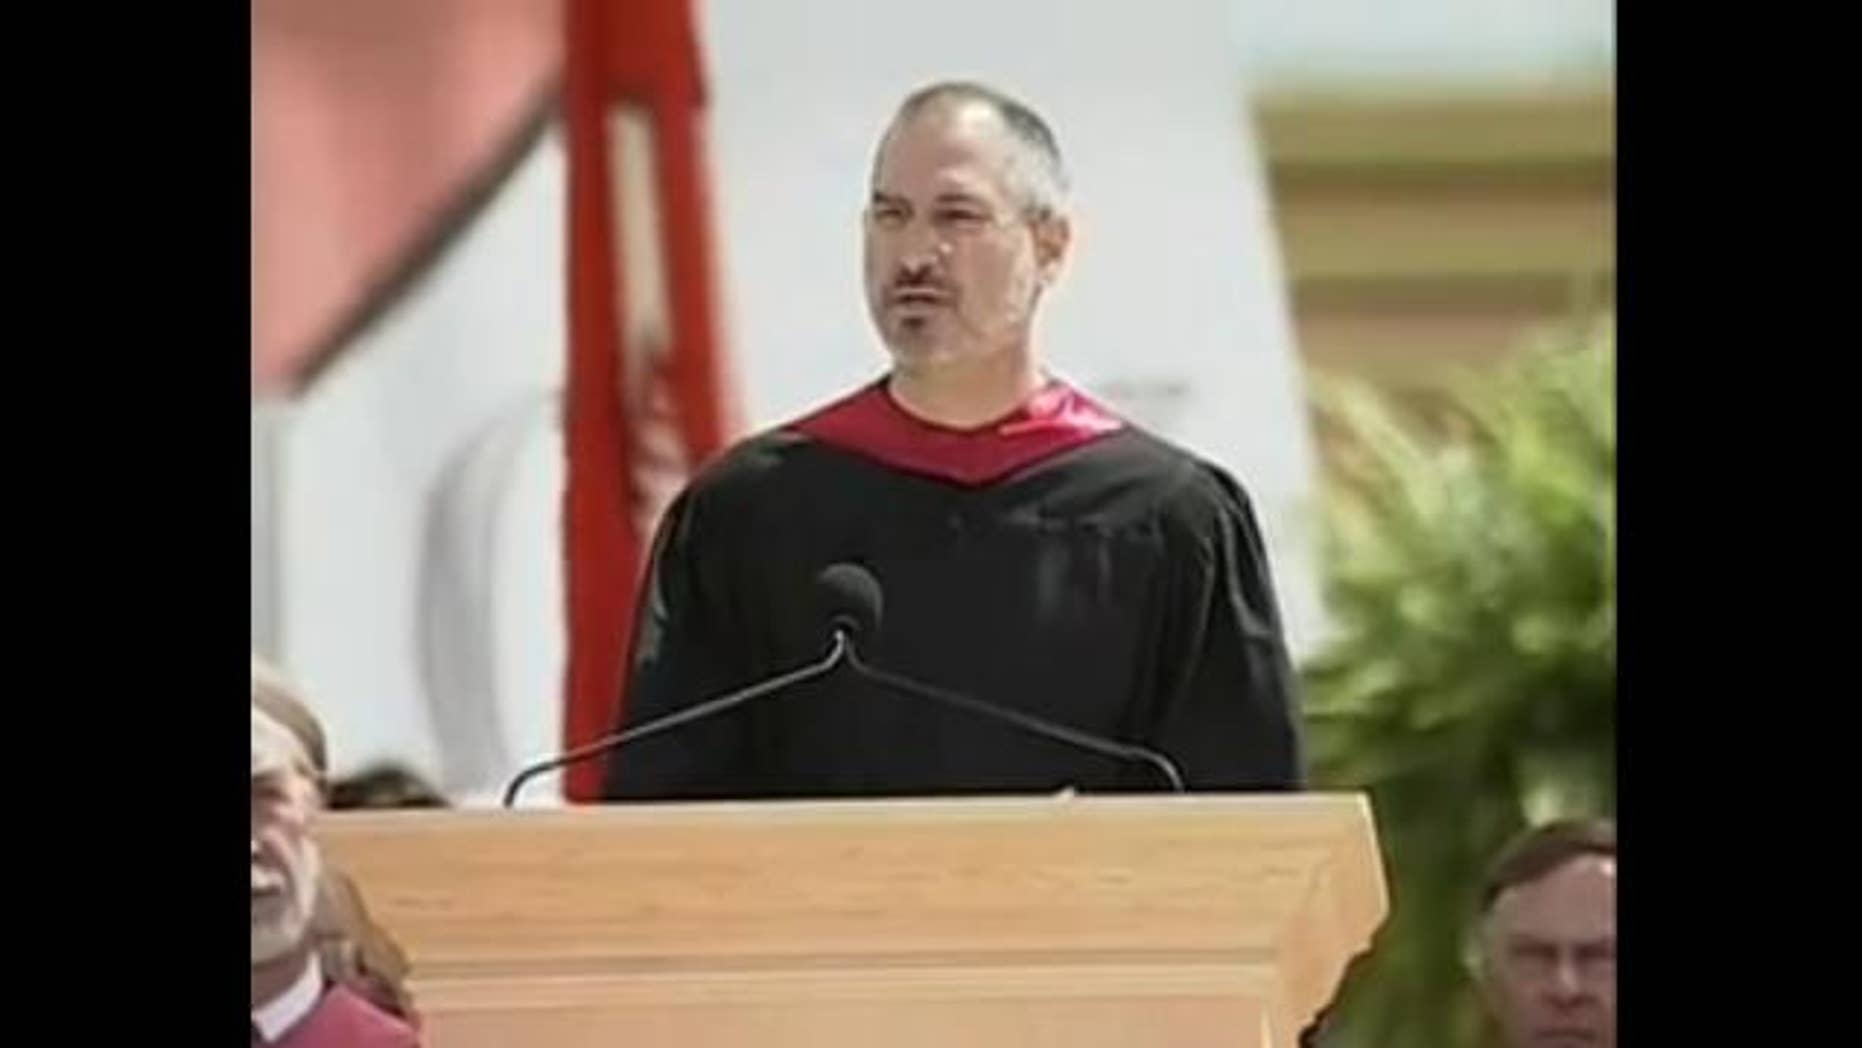 A screenshot from Steve Jobs 2005 Stanford commencement speech, where the Apple co-founder discussed life, work and death.